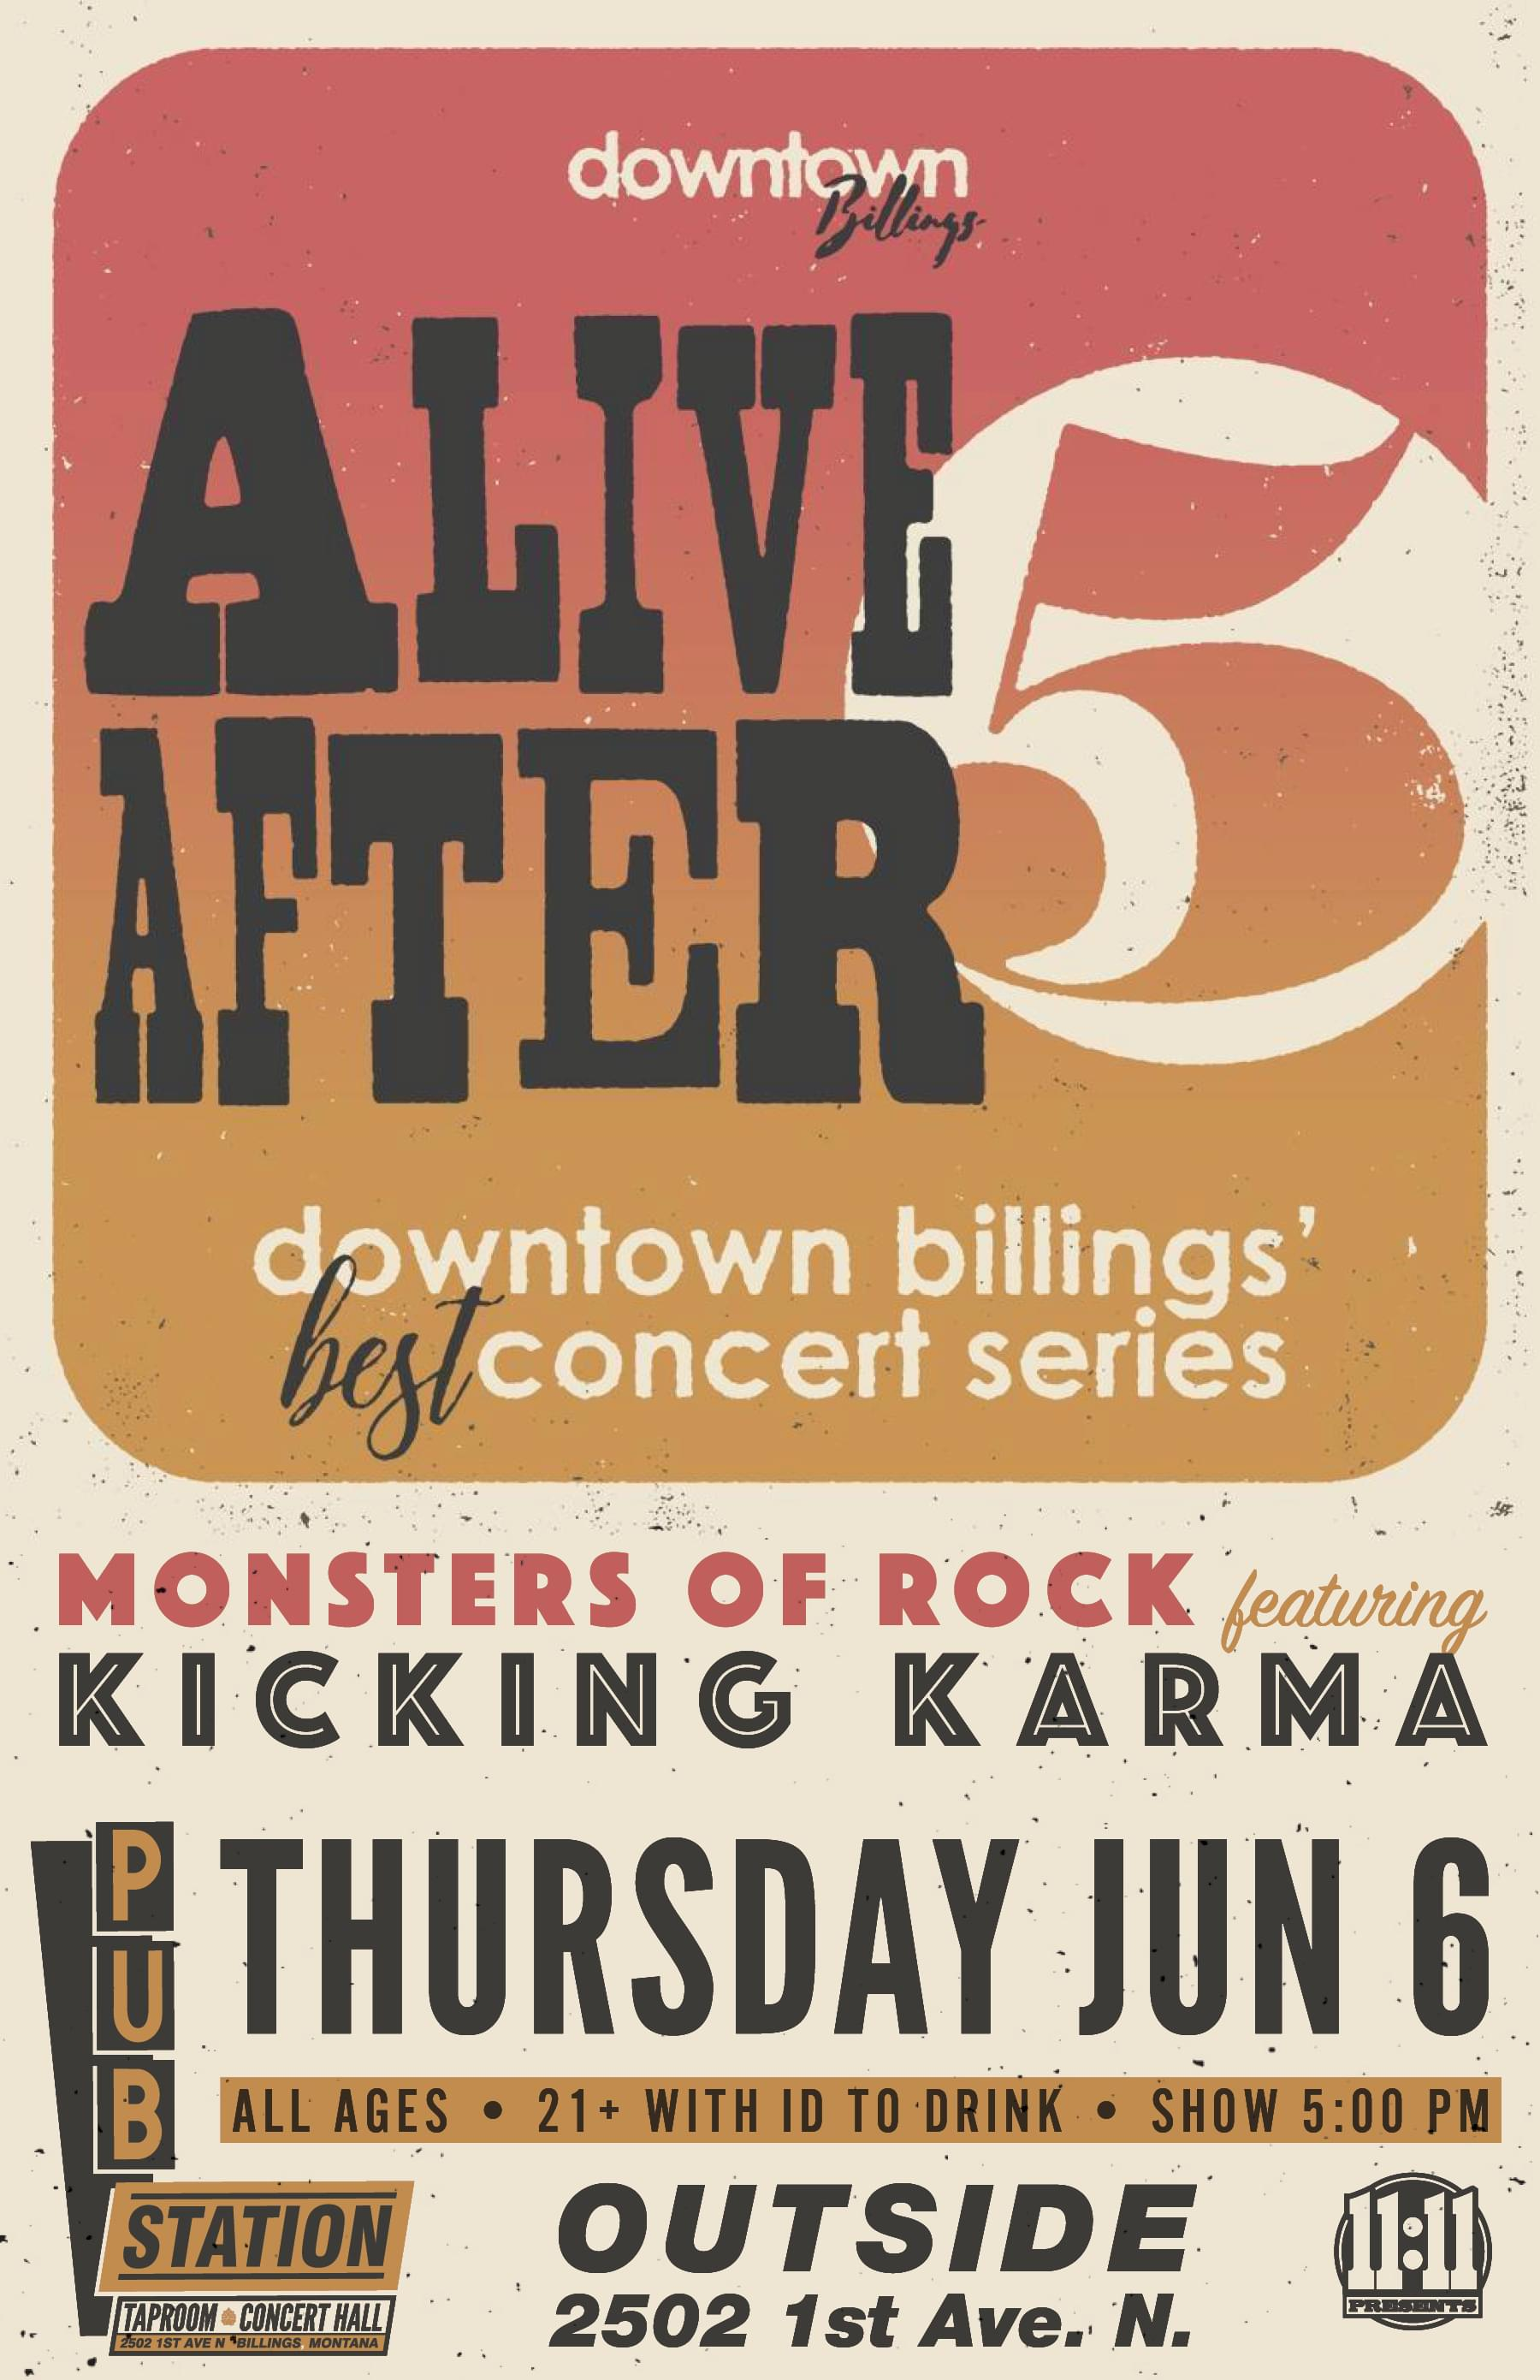 Alive After 5 w/ Monsters of Rock Tribute featuring Kicking Karma